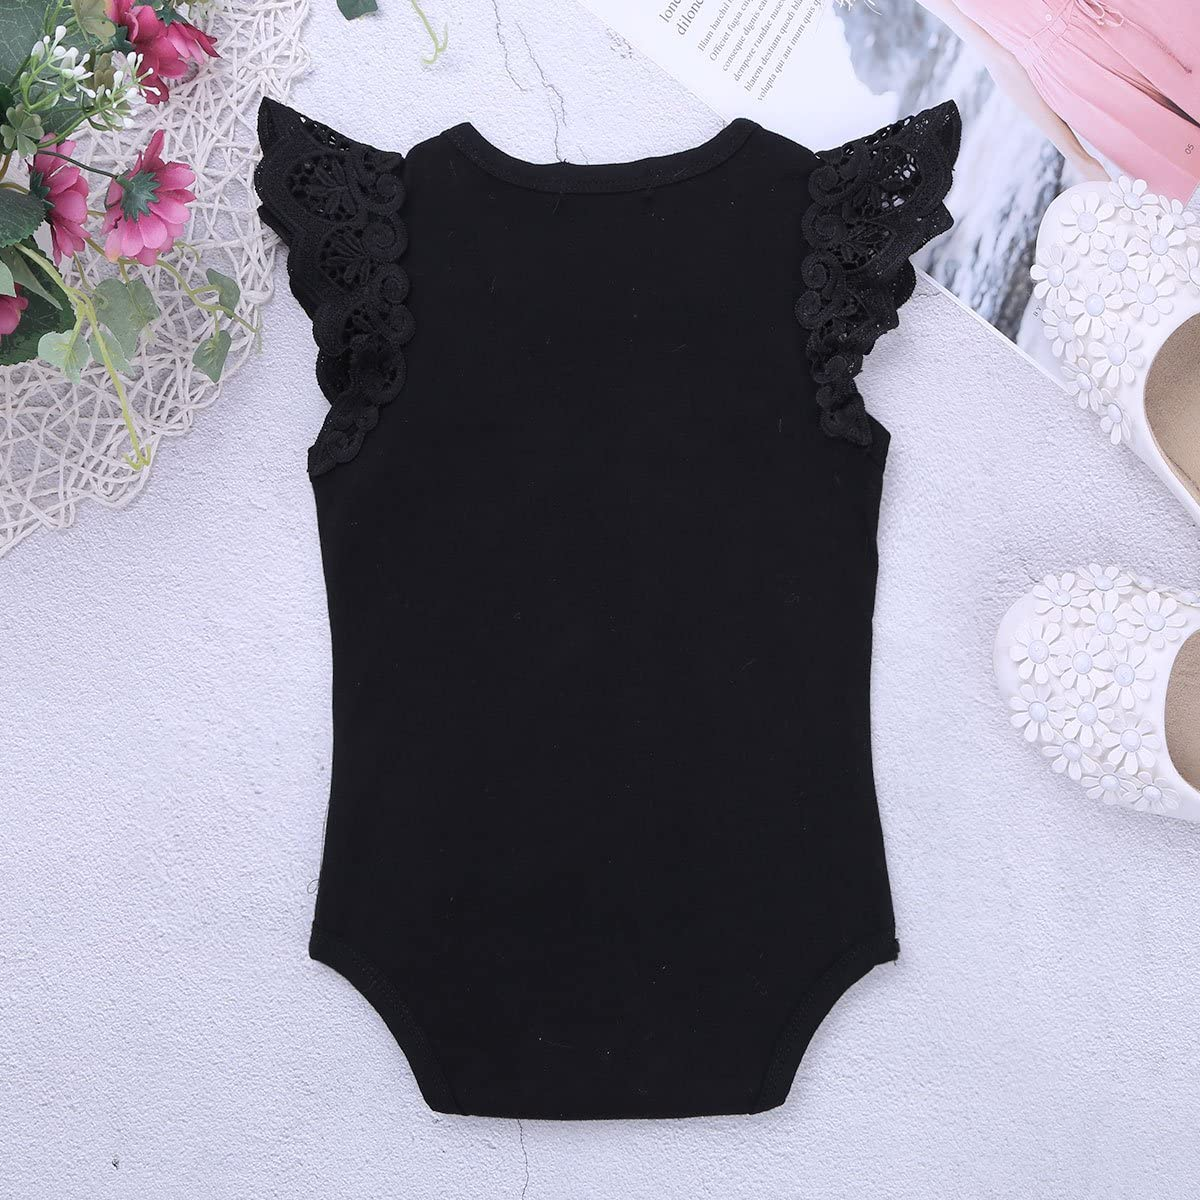 iiniim Newborn Infant Baby Girls Ruffle Lace Short Sleeve Bodysuit Solid Cotton Romper Jumpsuit Summer Top T Shirts